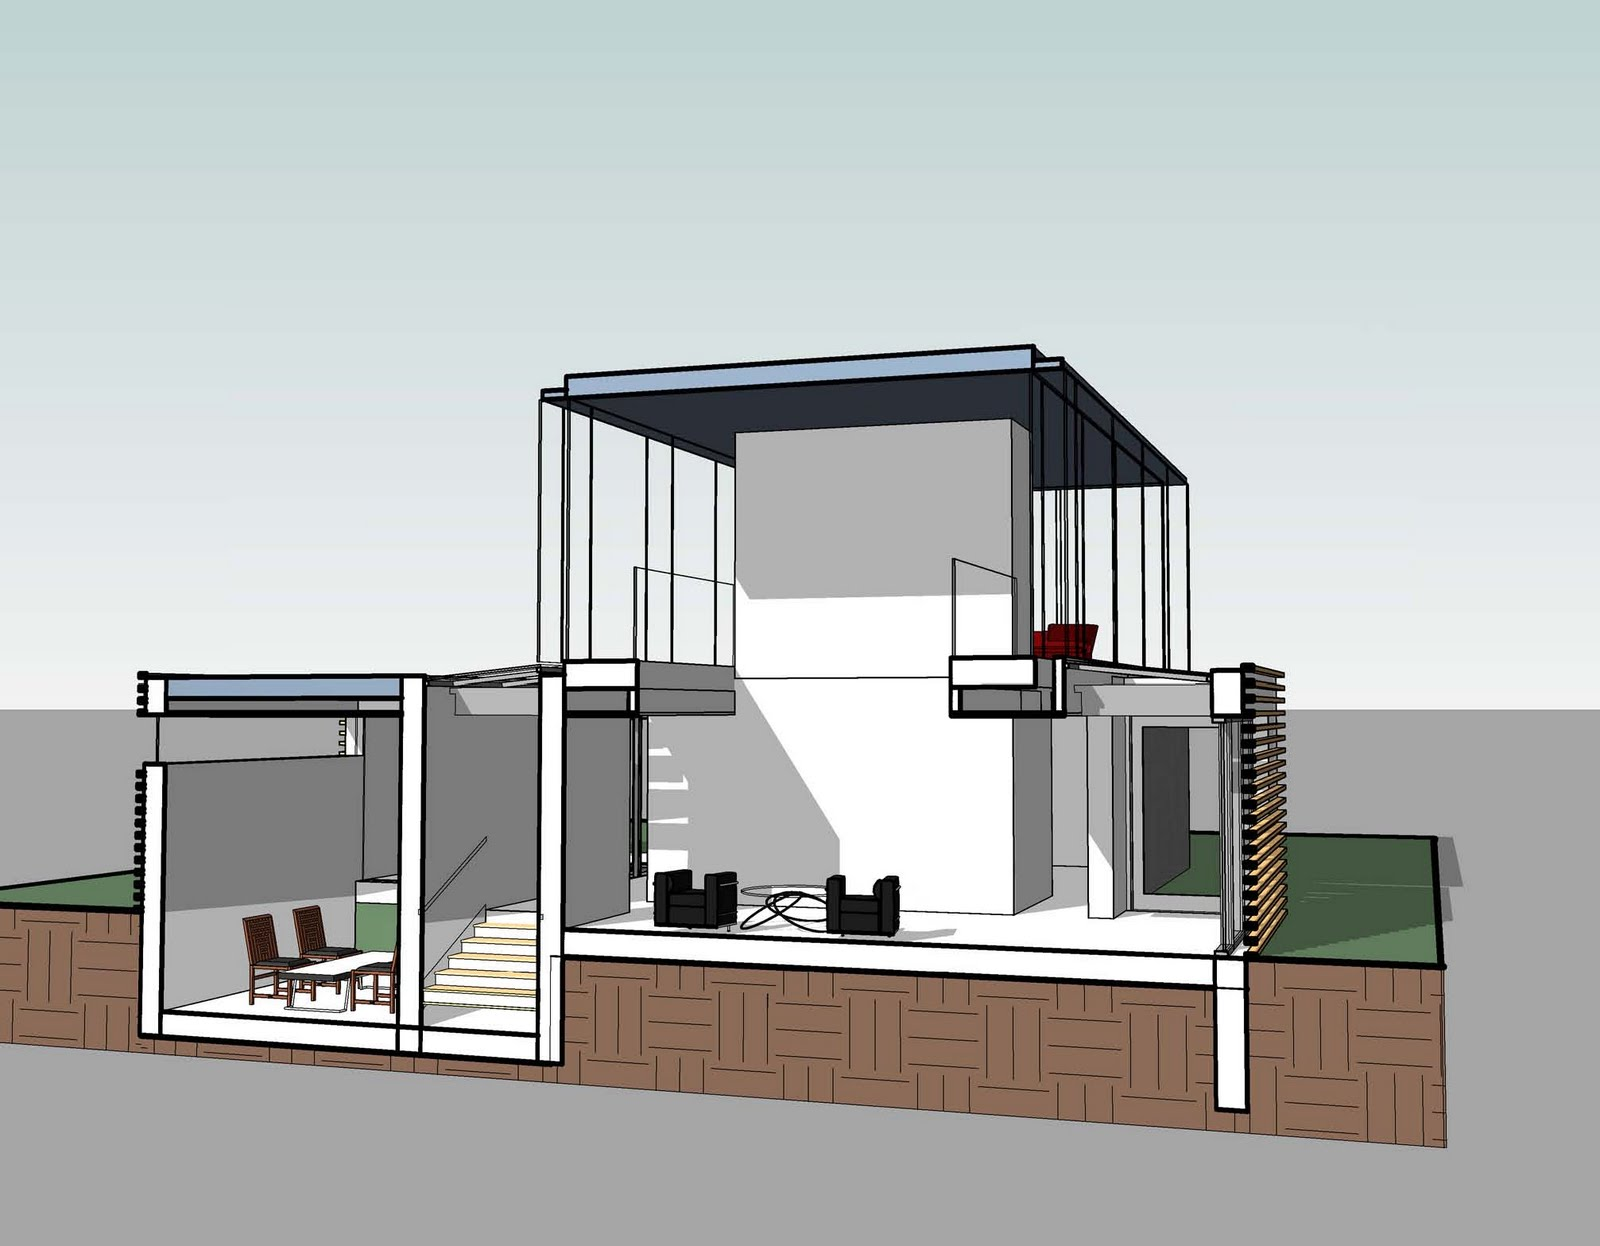 Revit detail 13 7 modern house toposurface for Revit architecture modern house design